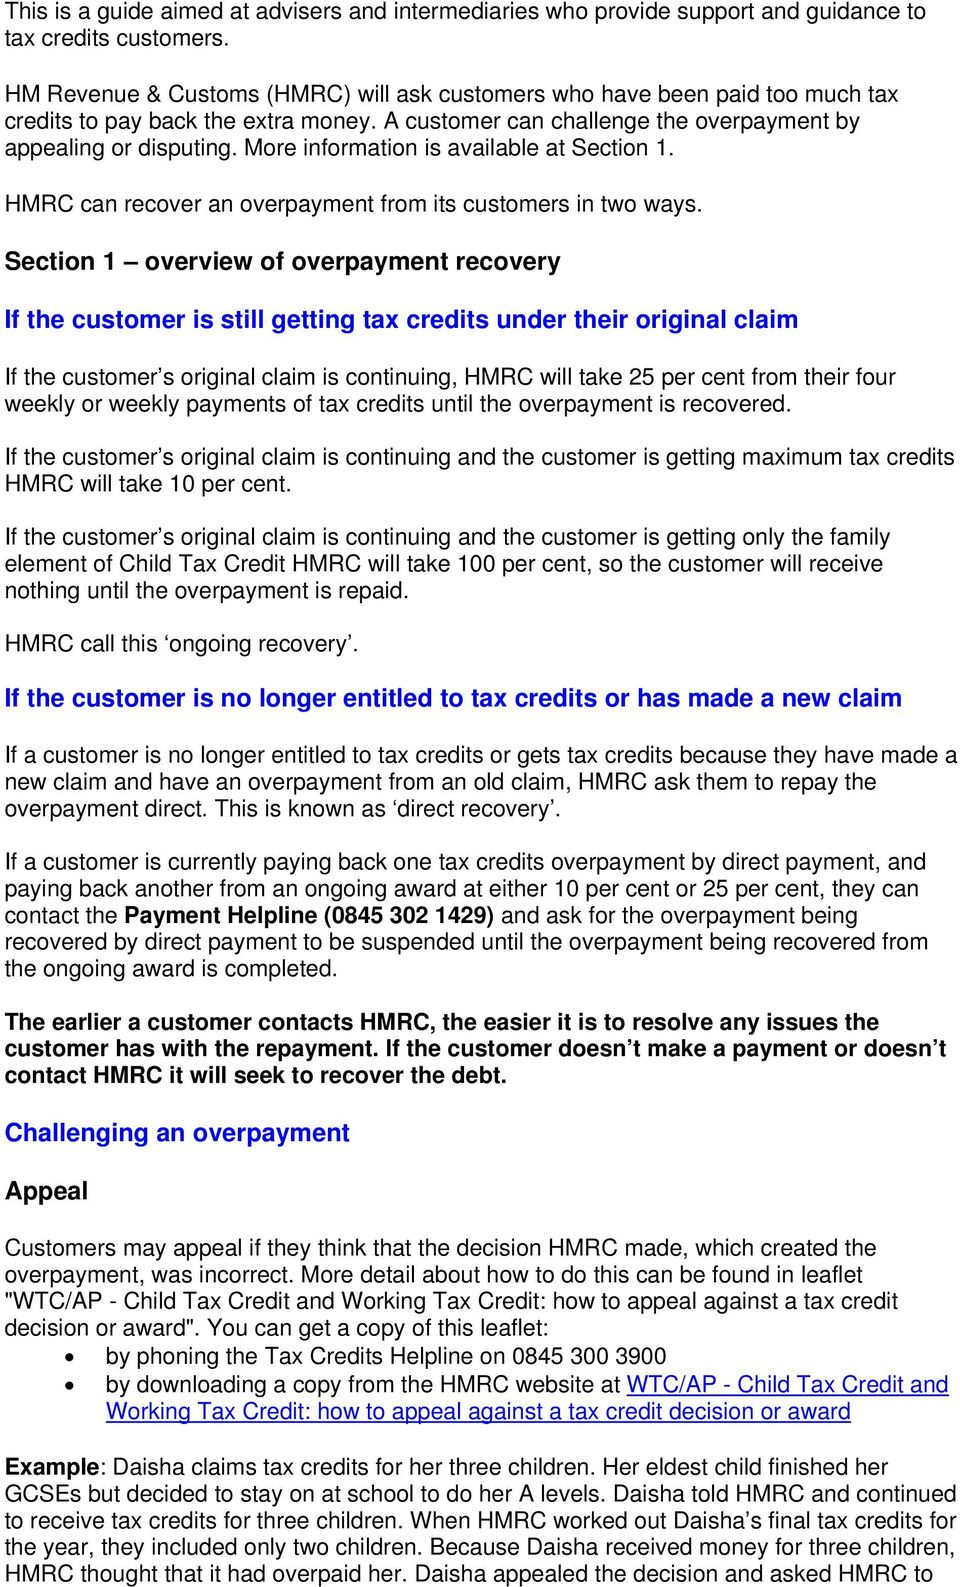 How Much Tax Credits Will I Get >> How Hm Revenue Customs Handle Tax Credits Overpayments Pdf